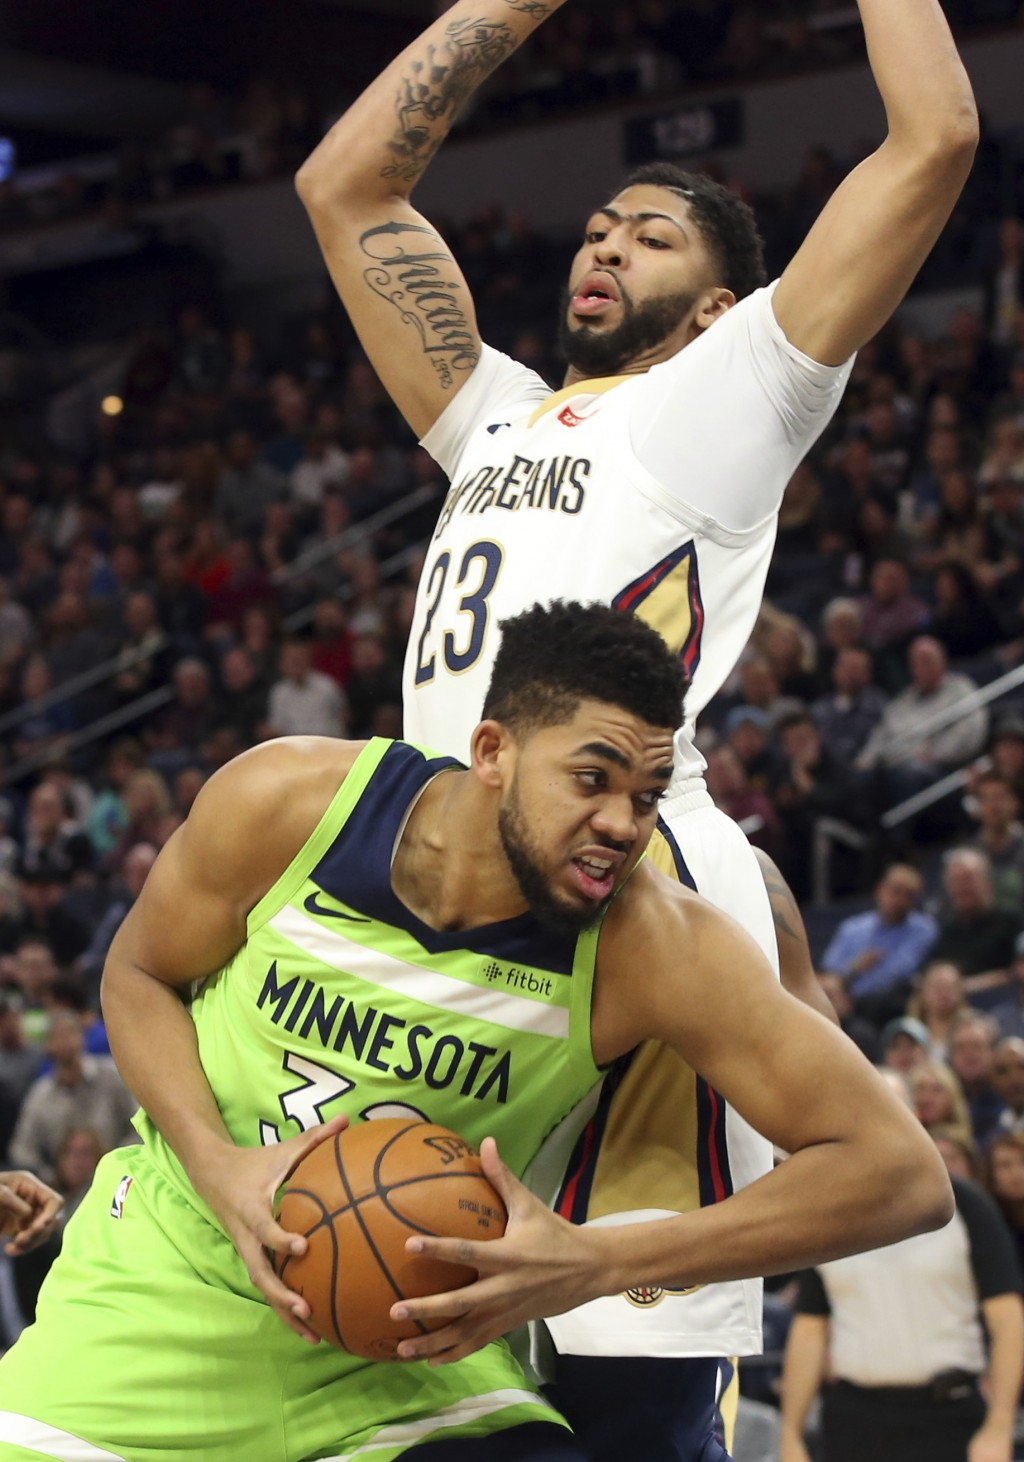 Minnesota Timberwolves' Karl-Anthony Towns, bottom, drives around New Orleans Pelicans' Anthony Davis, top, in the first half of an NBA basketball gam...